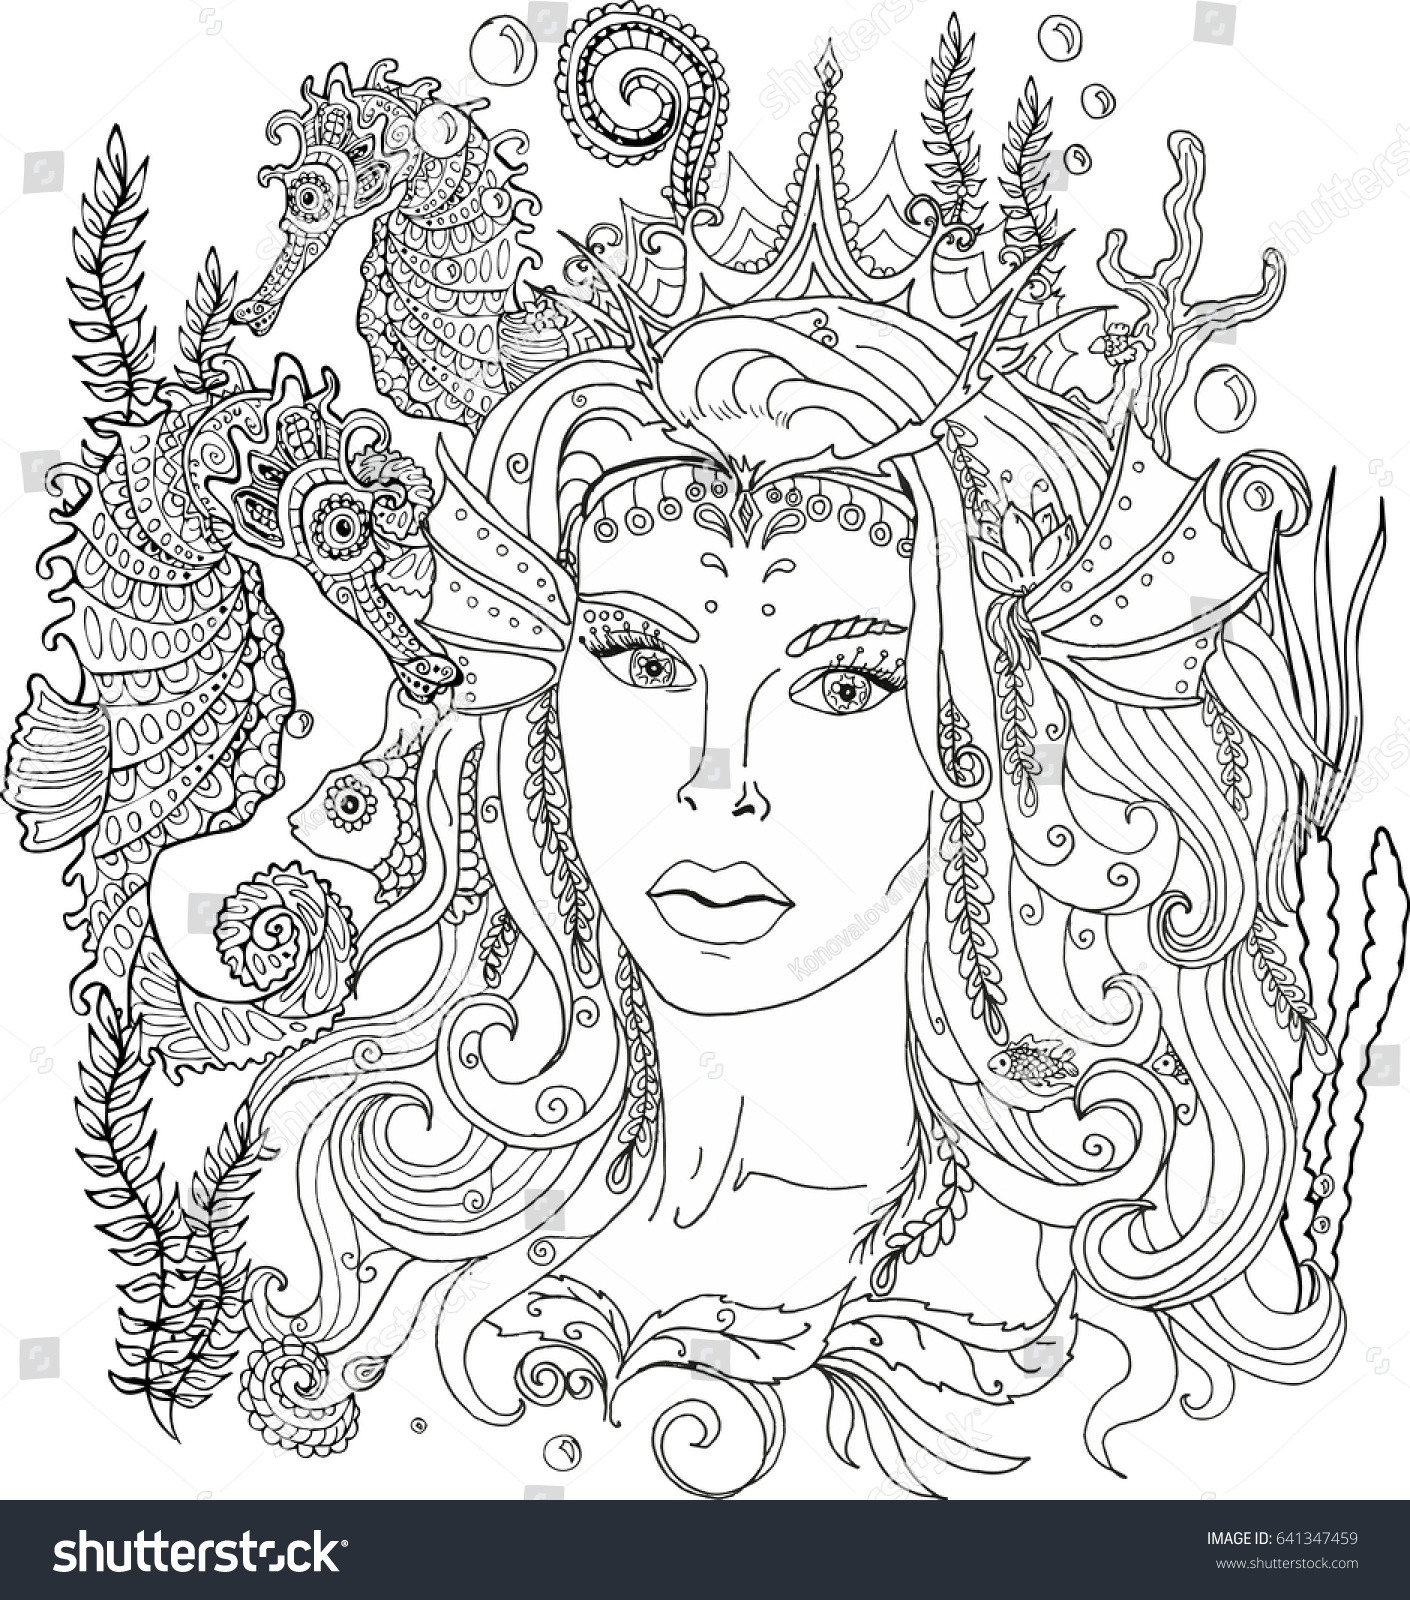 1410x1600 Image Result For Realistic Princess Coloring Pages Adults I Lively